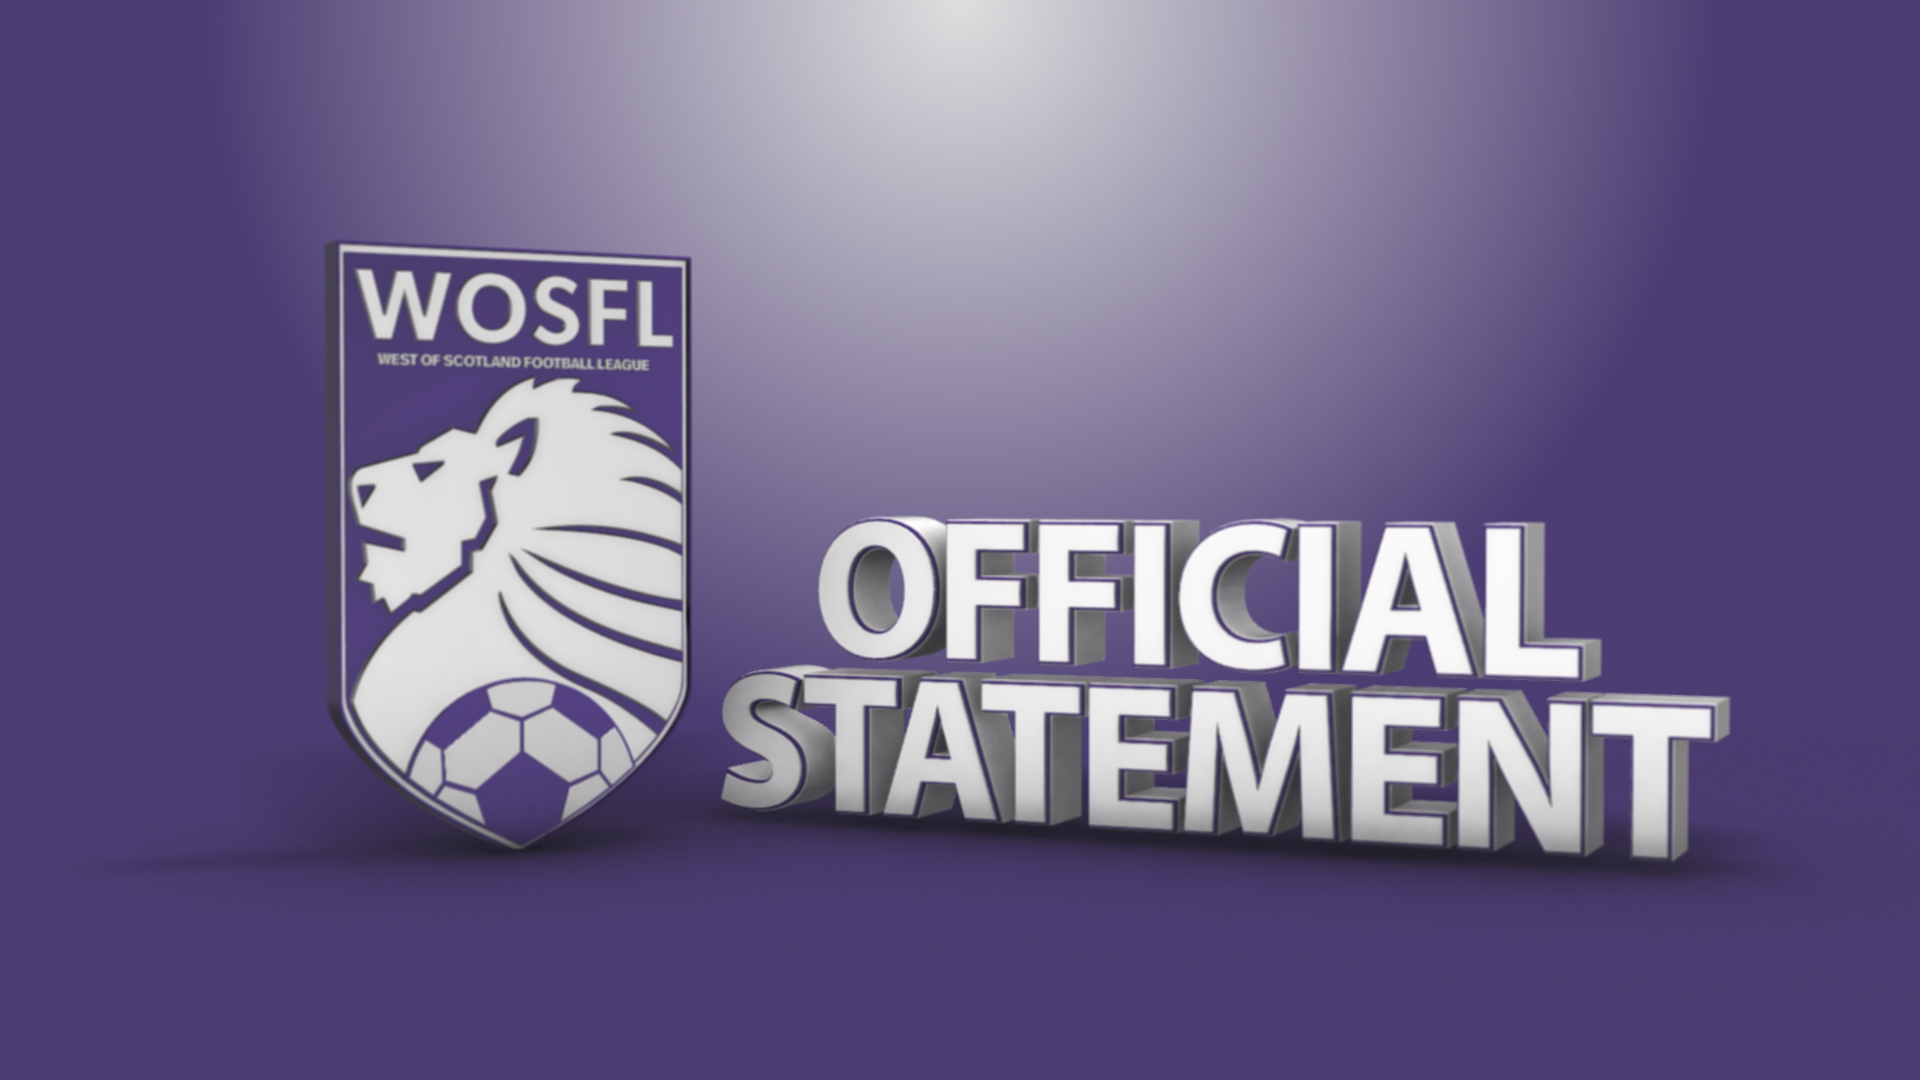 End of Season Statement